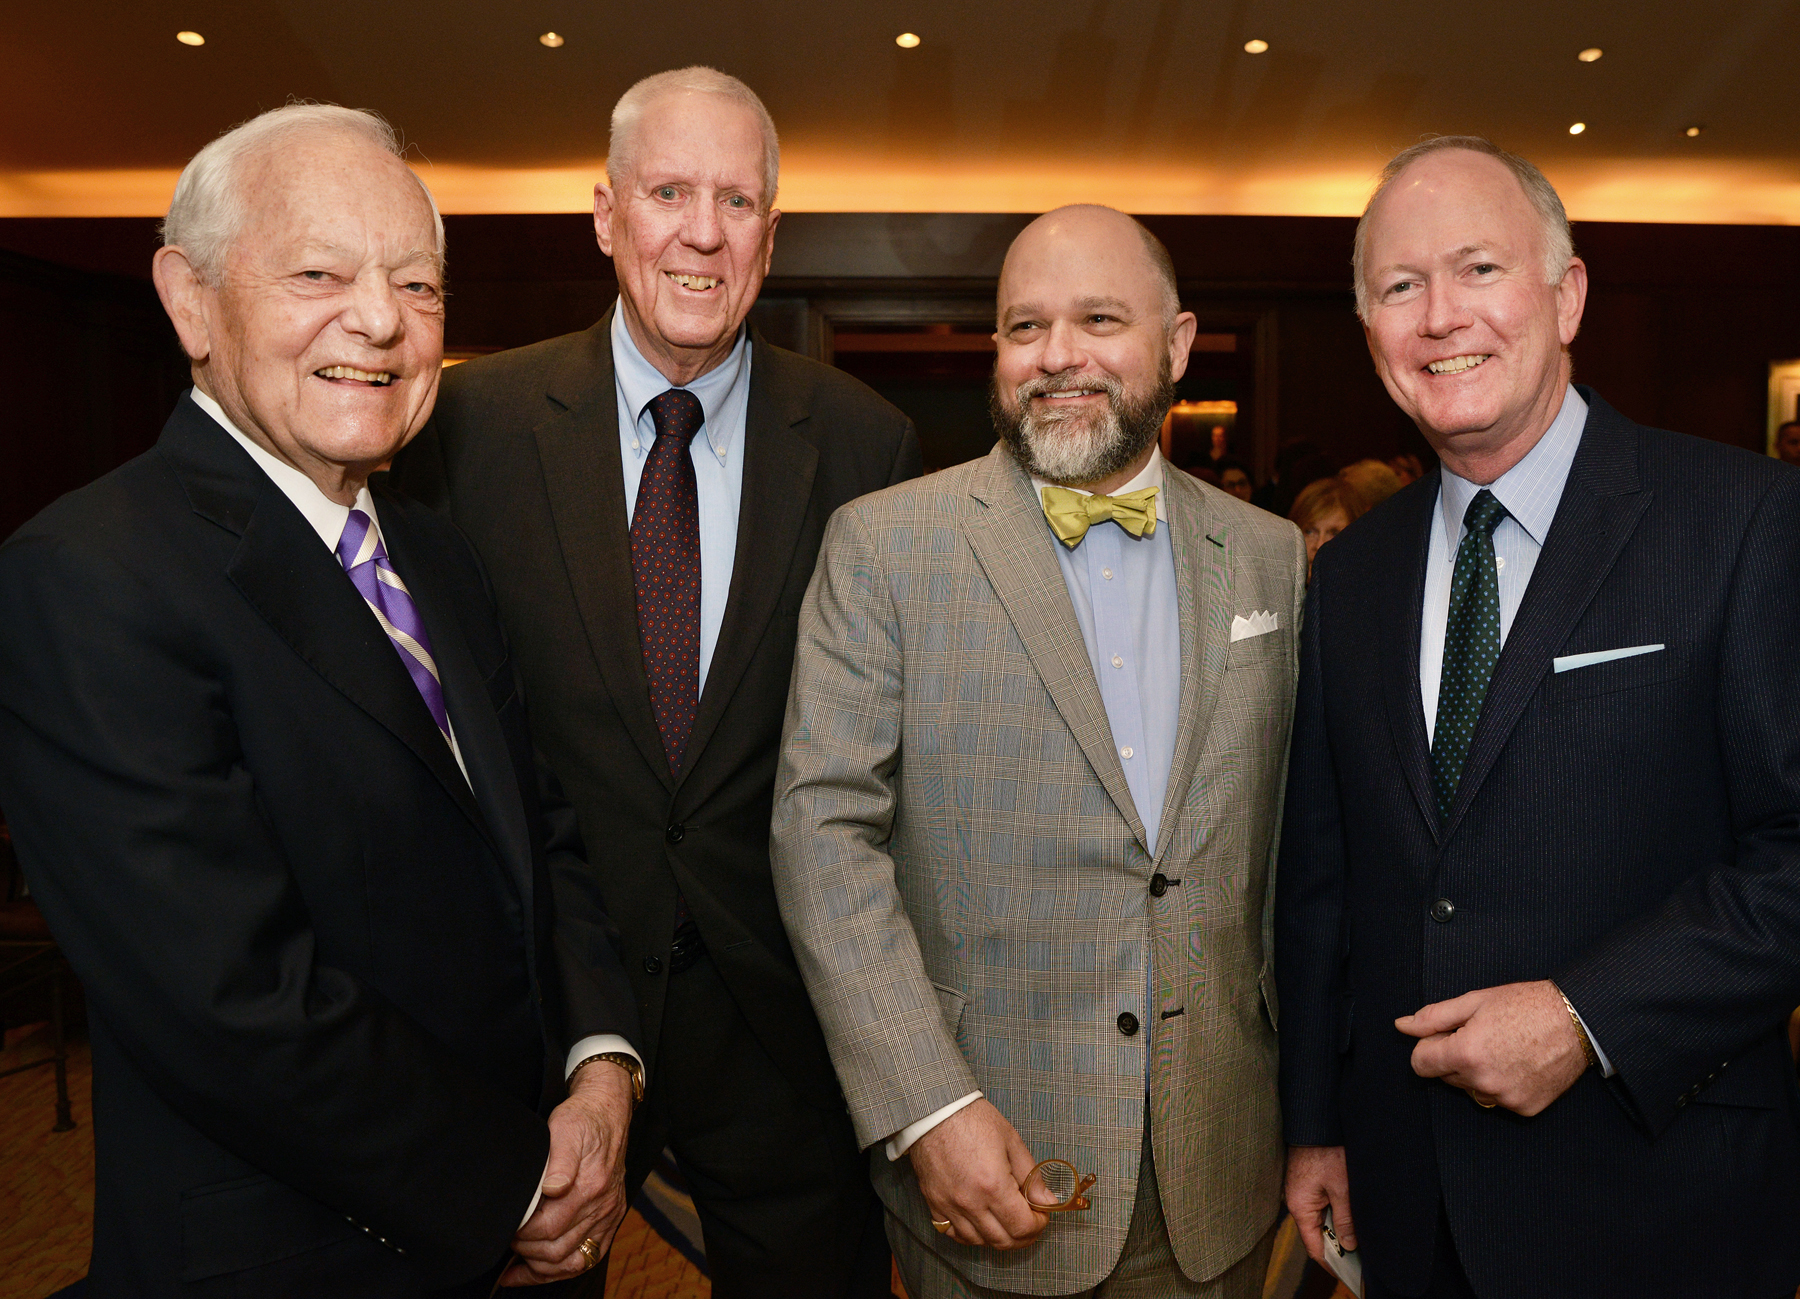 Bob Schieffer of CBS; David Hartman; longtime host of ABC's Good Morning America; Brenton Simons, President and CEO of NEHGS; and Bill Griffeth, co-anchor of CNBC's Closing Bell